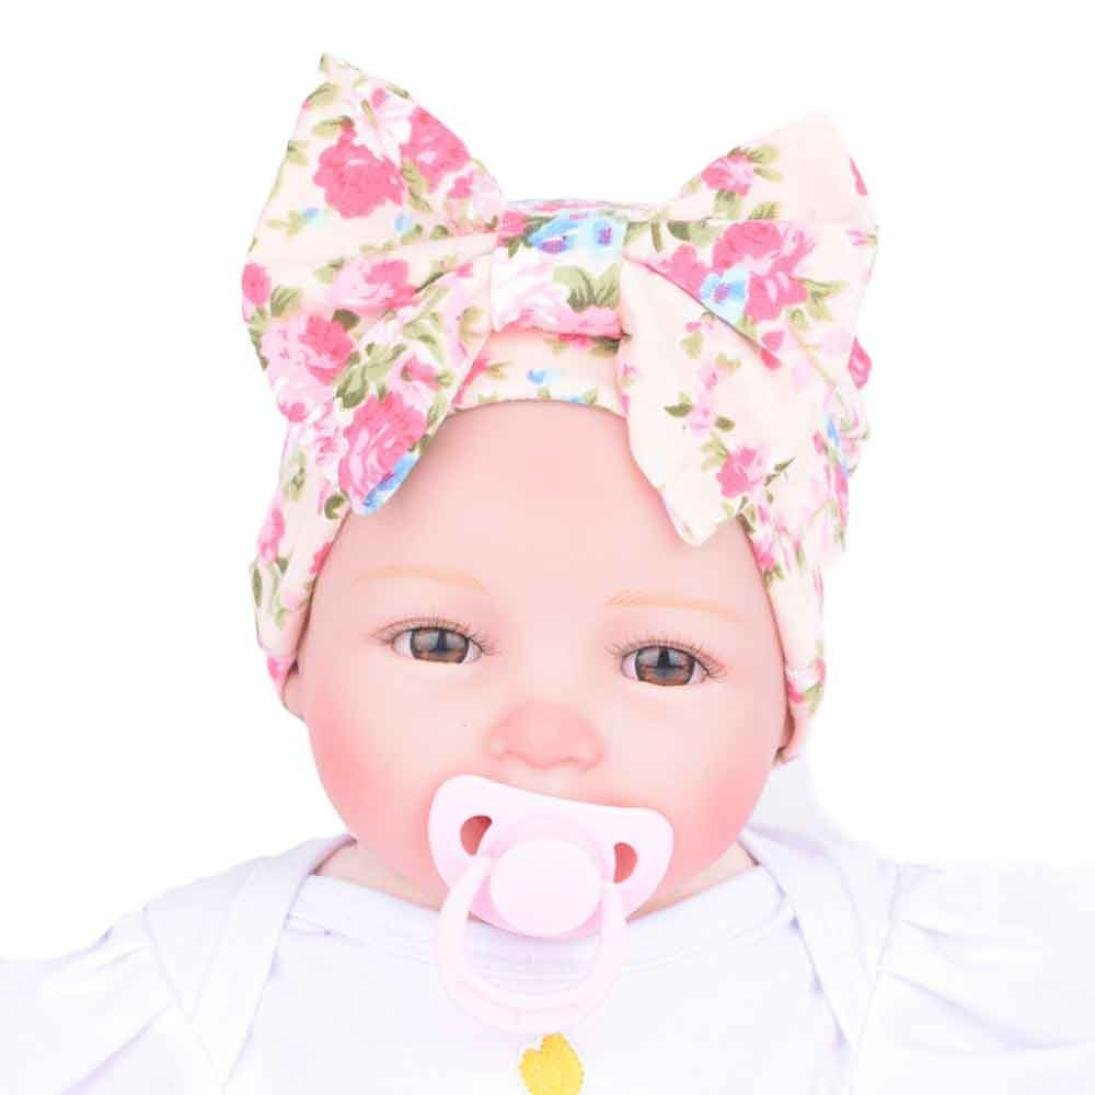 Kanpola Women Newborn Hospital Hat Newborn Baby Hats with Flower Bowknot Flower Hat Beige